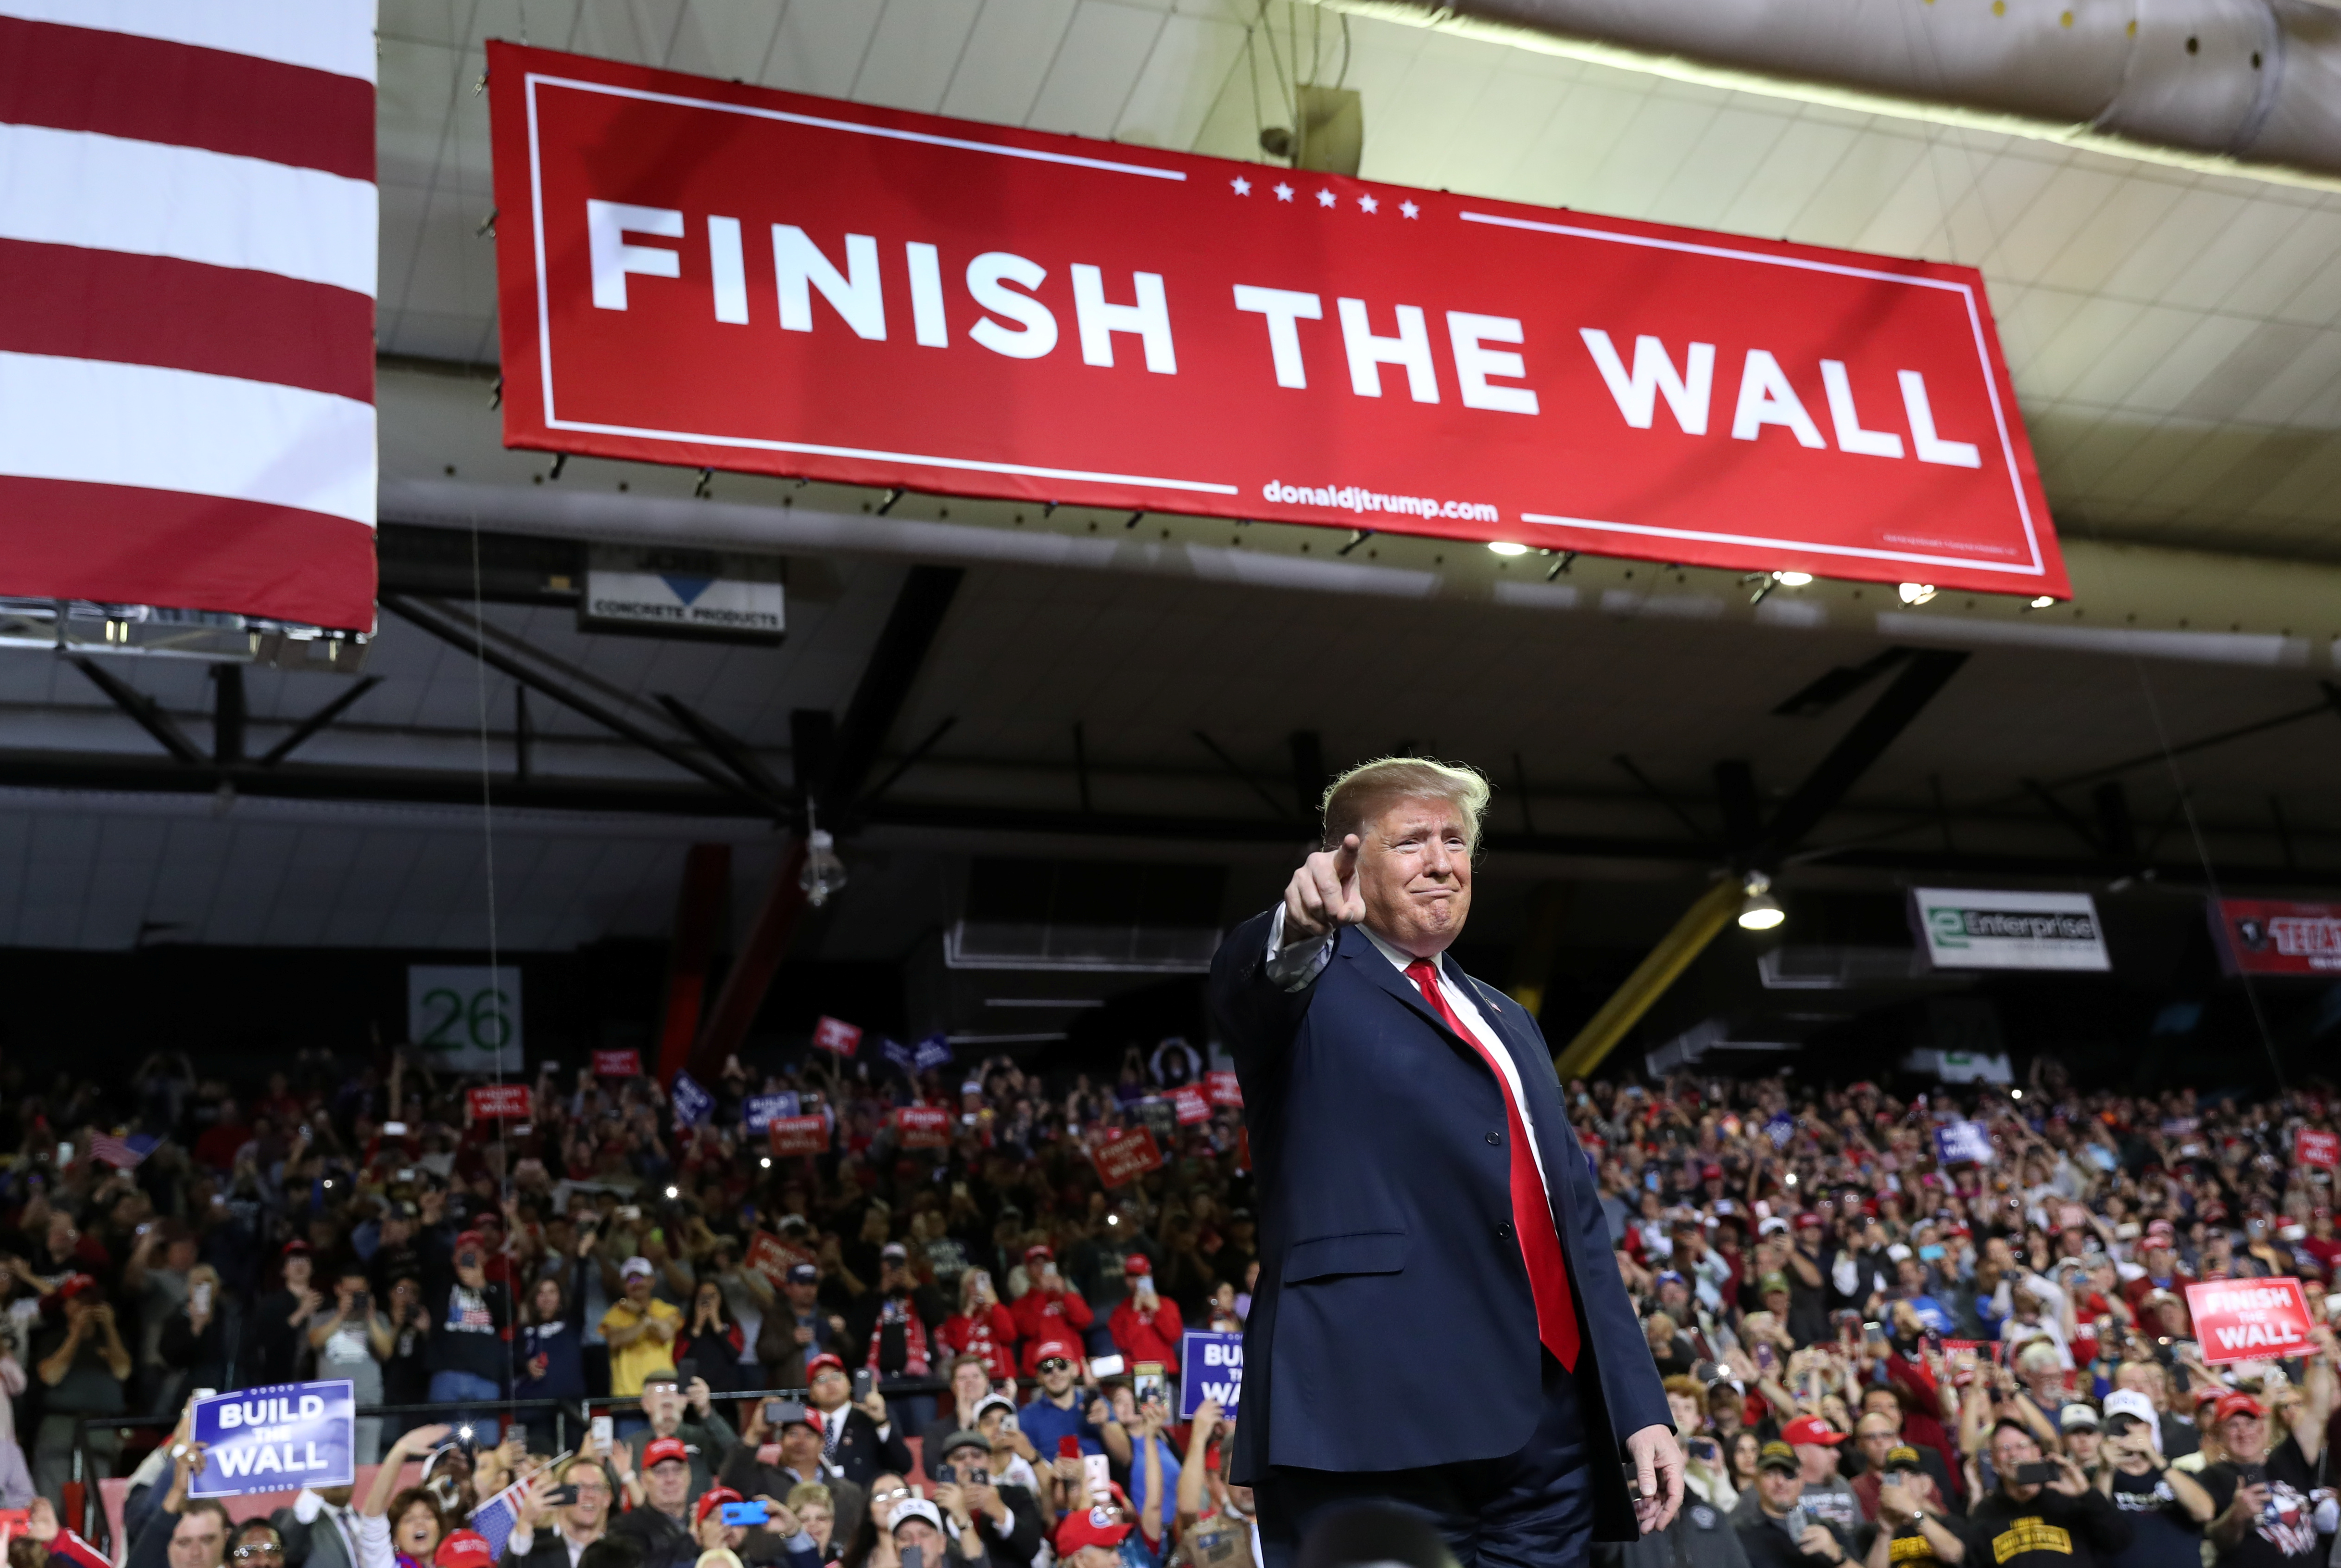 U.S. President Donald Trump speaks during a campaign rally at El Paso County Coliseum in El Paso, Texas, Feb. 11, 2019.